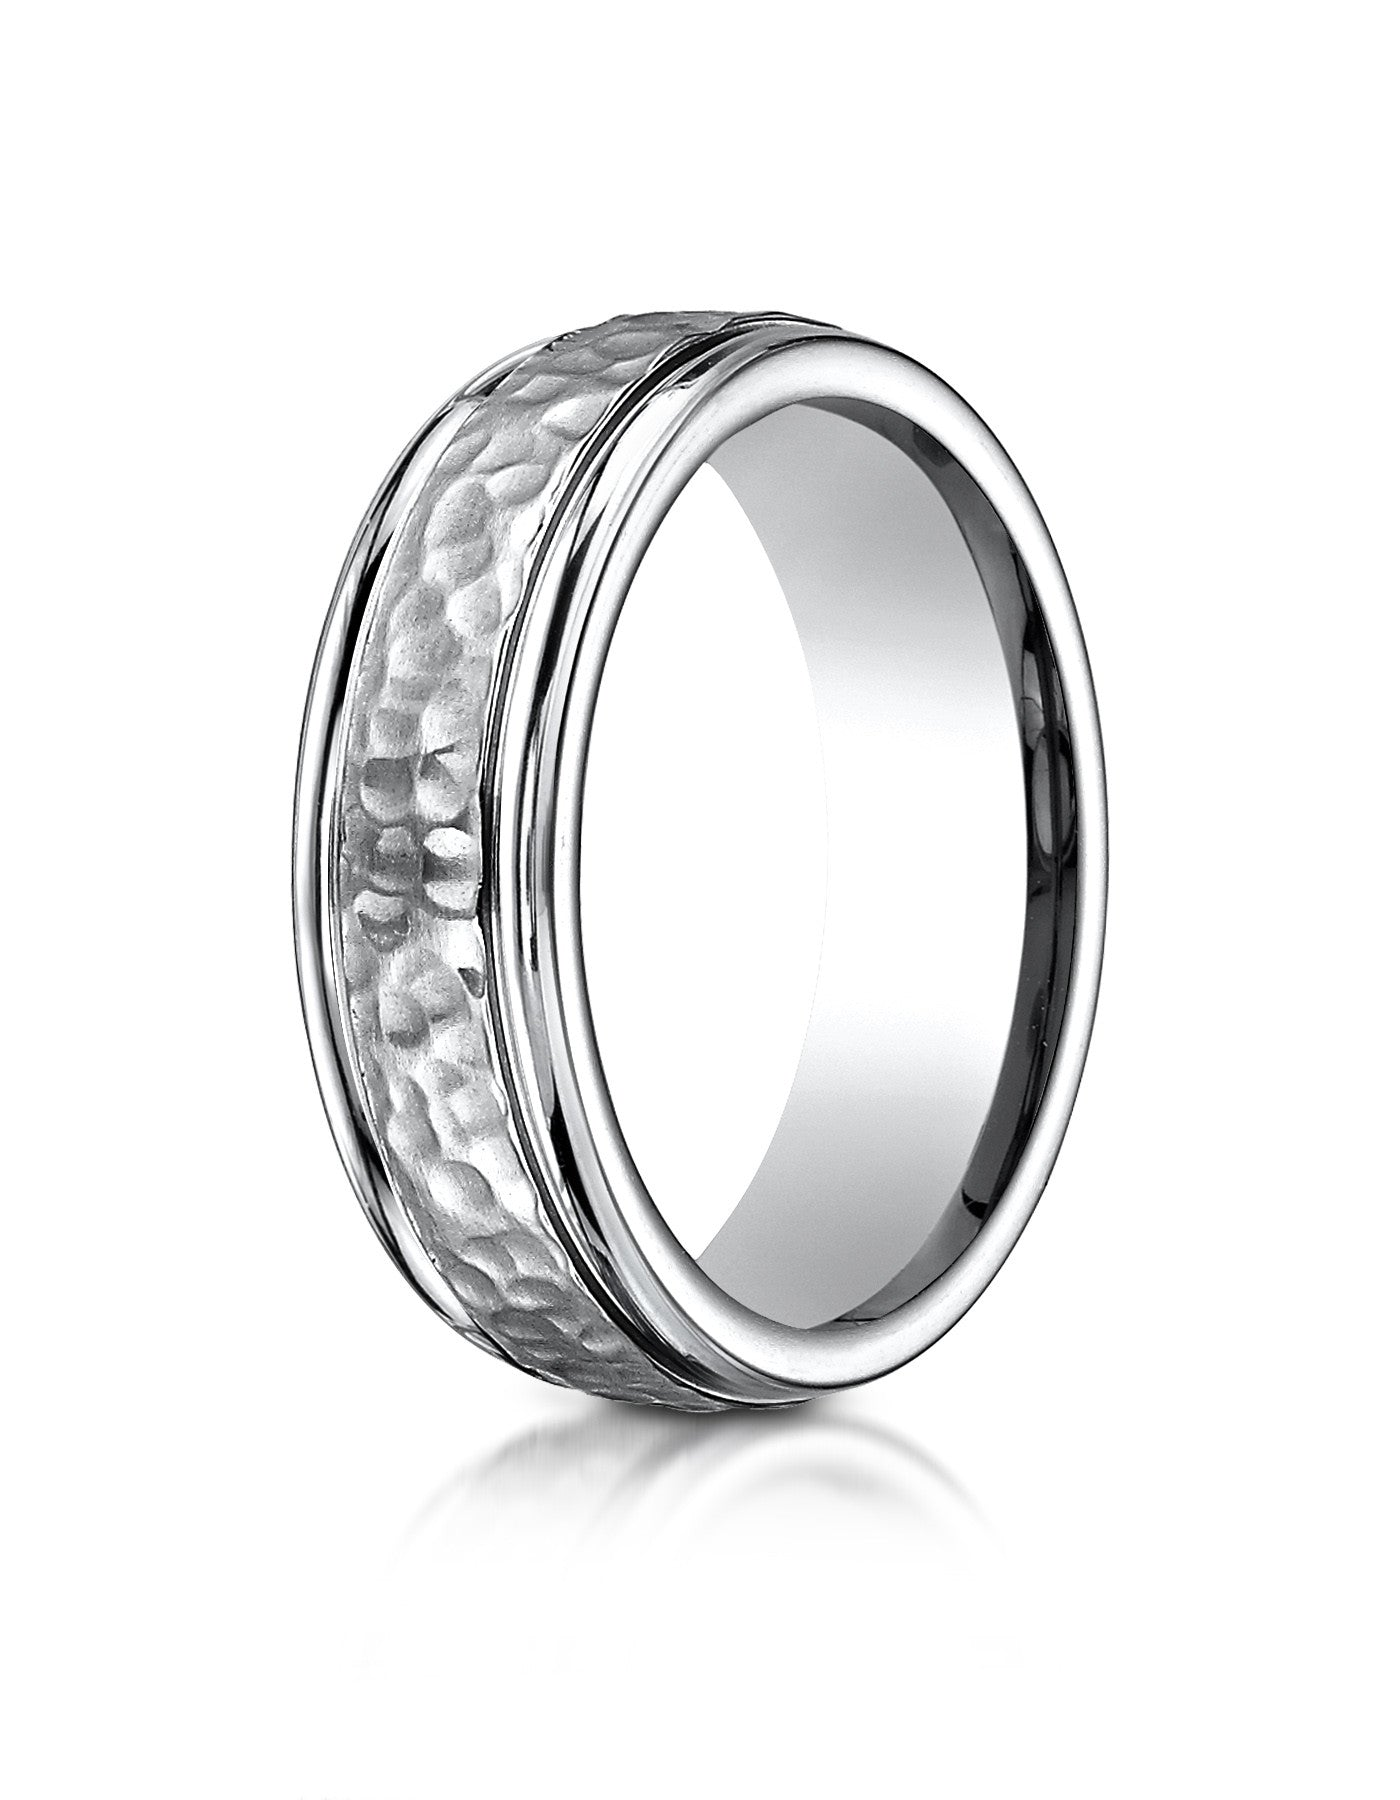 CARACAS HammeredFinished Titanium Wedding Band for Men Wedding